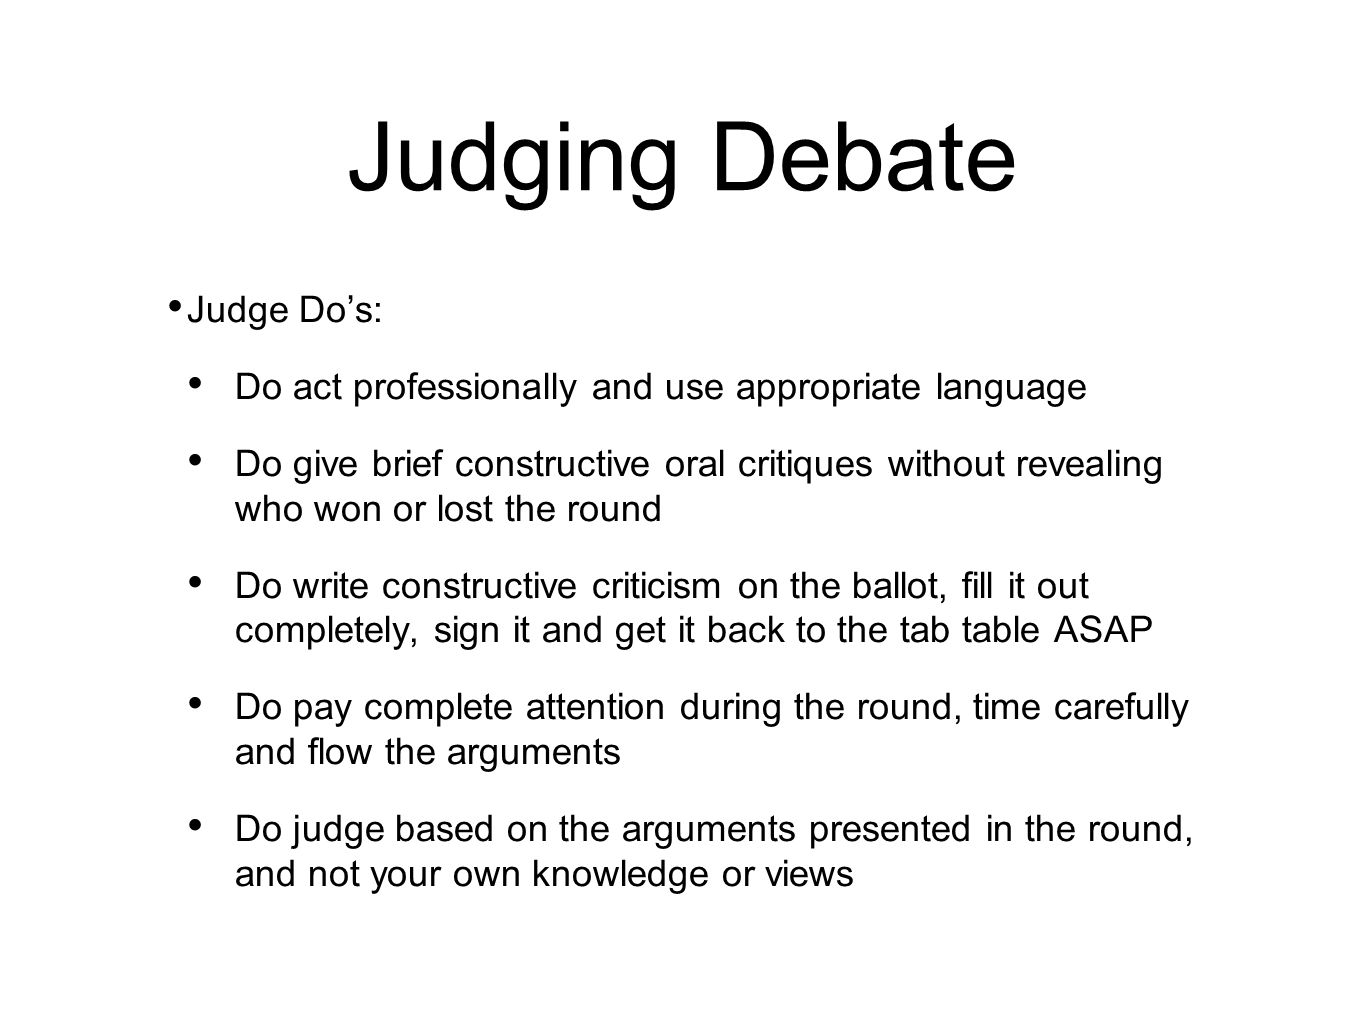 How to Judge a Debate recommend